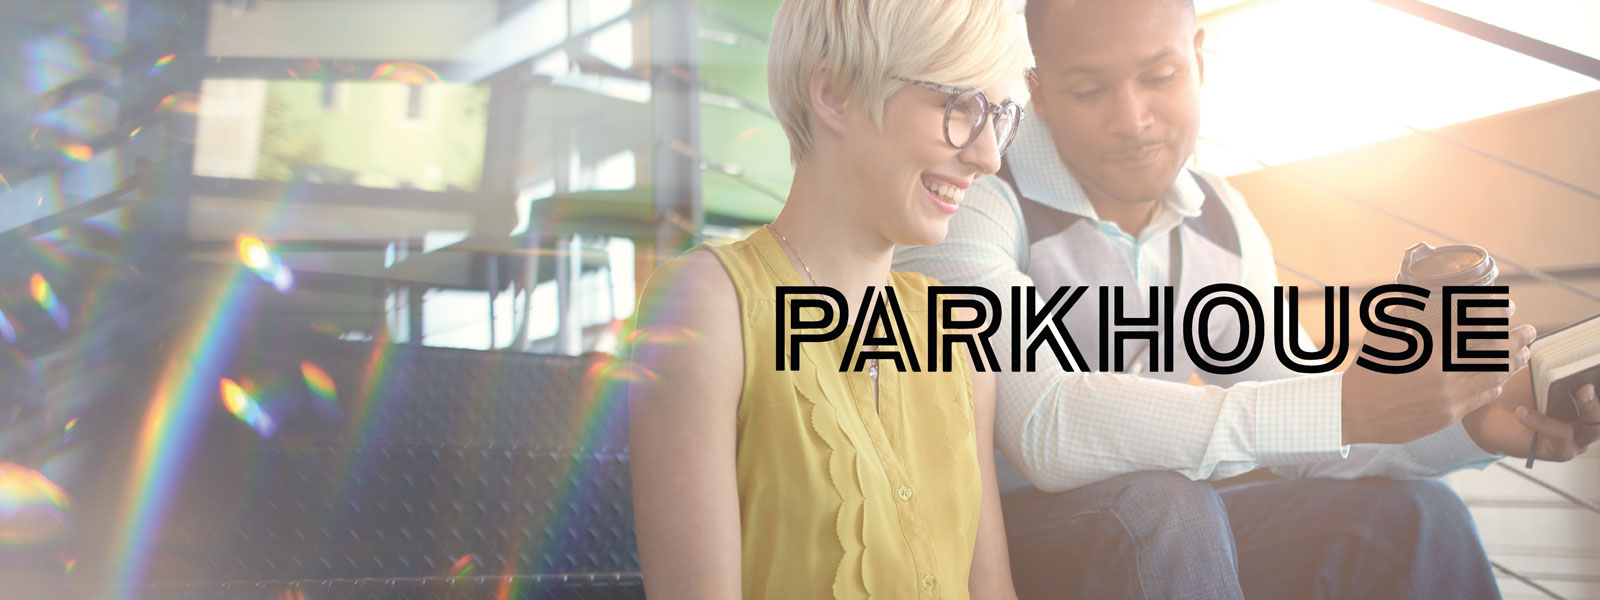 Introducing Parkhouse, a new name in strategic communications from Paragon